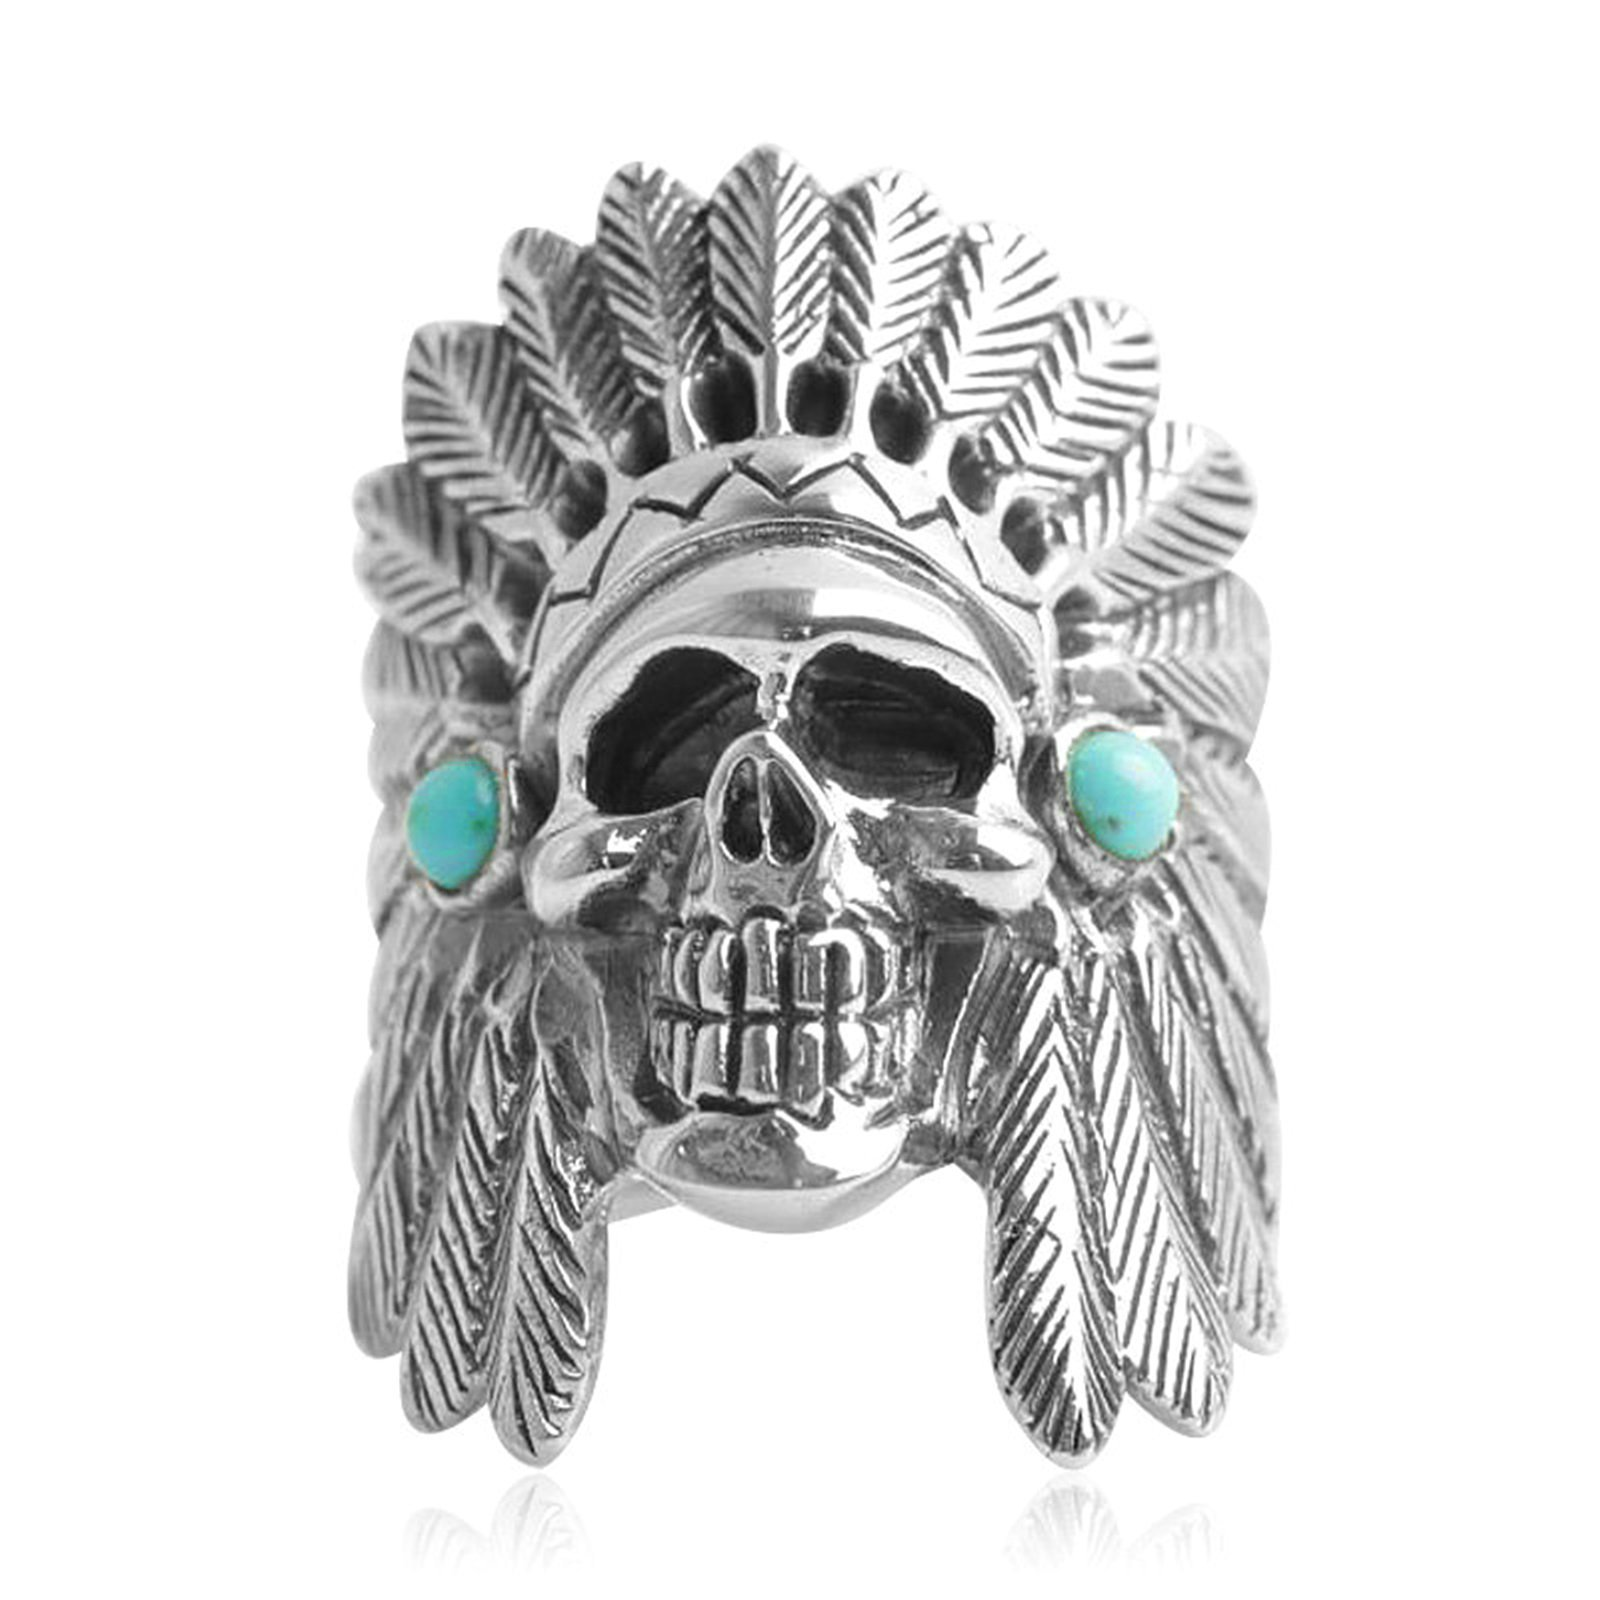 Adisaer Biker Rings Silver Ring for Men Indian Tribal Chief Skull Ring Size 8 Vintage Punk Jewelry